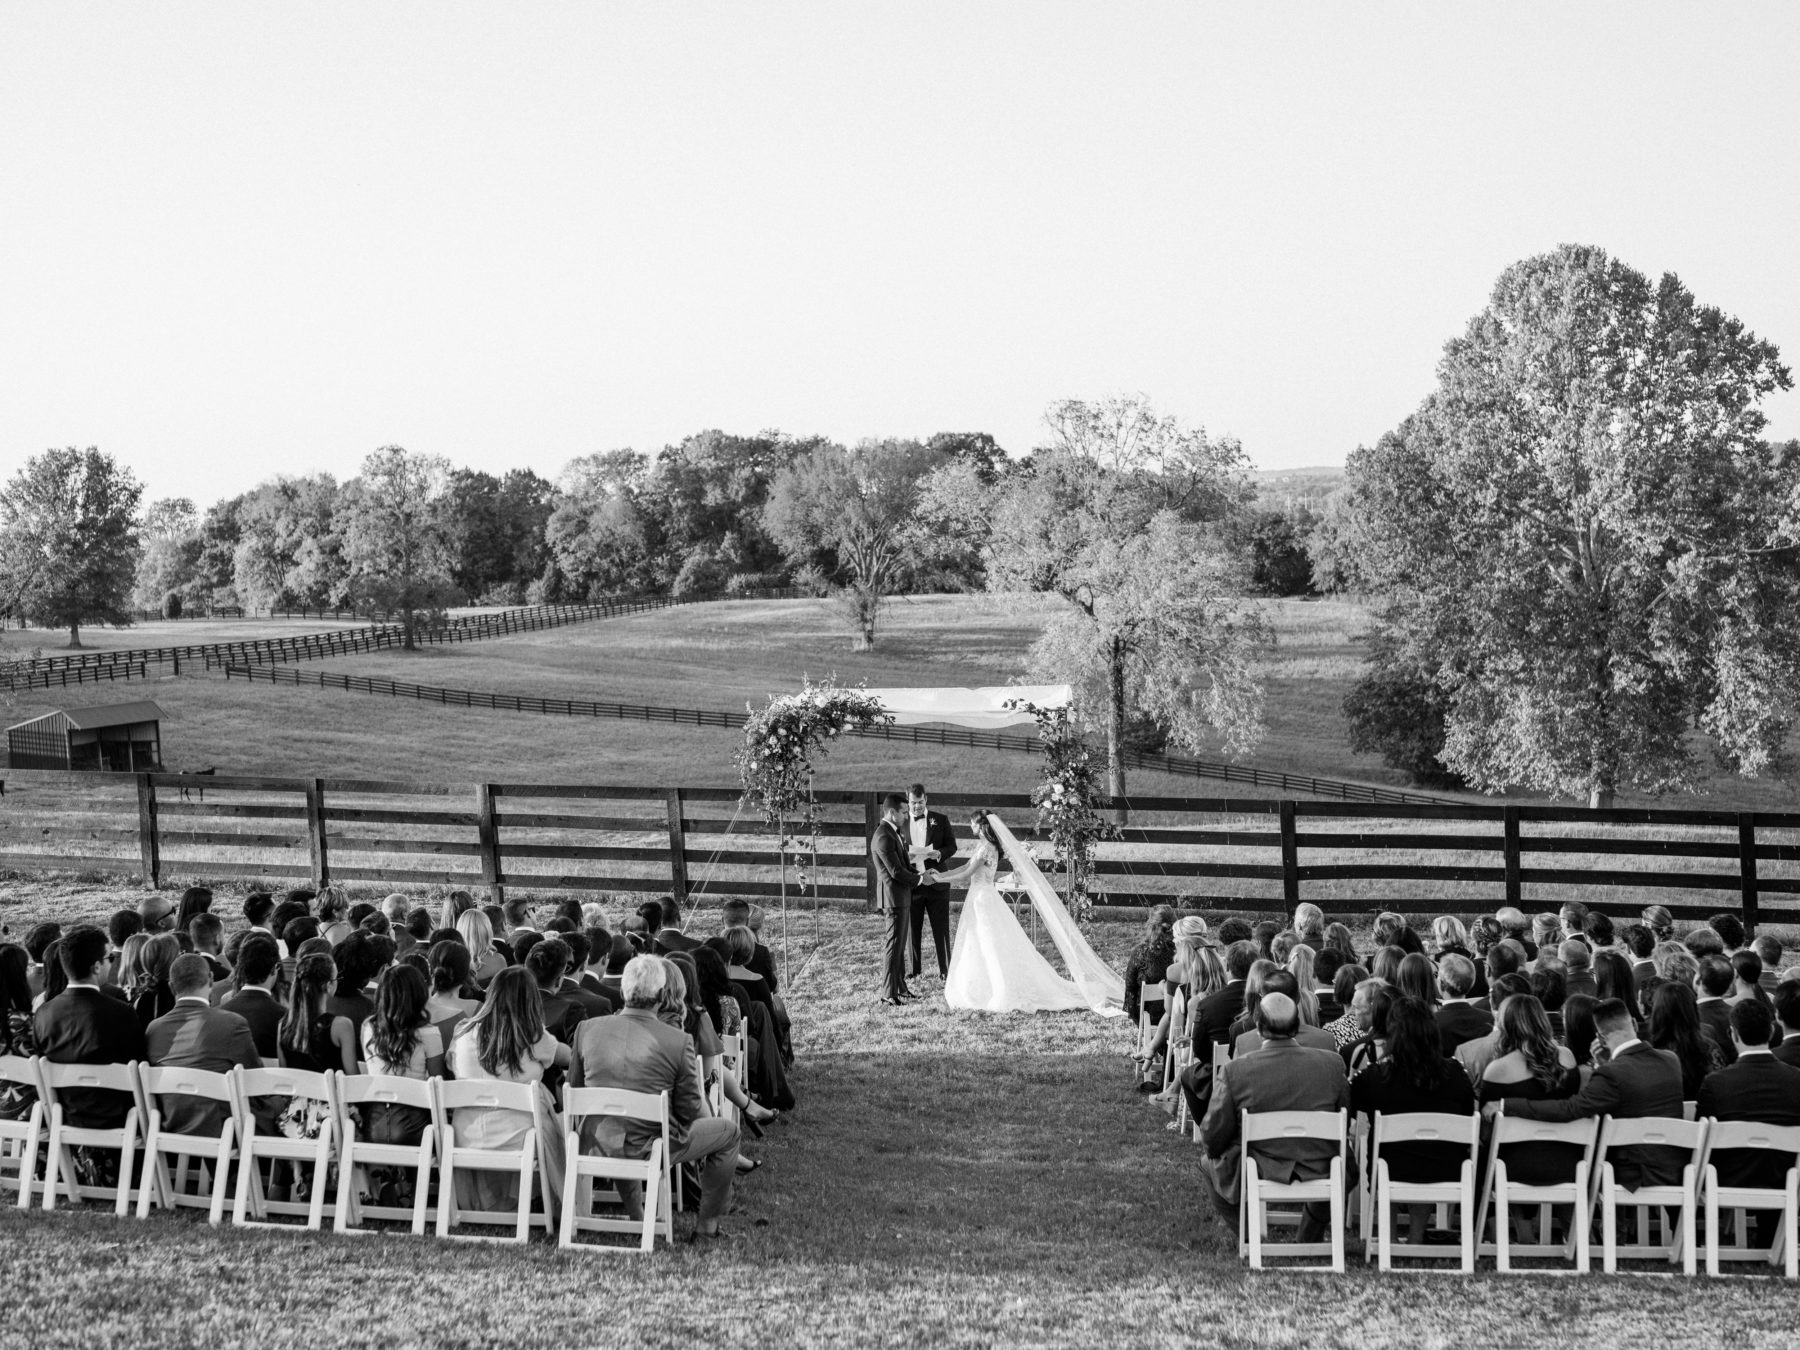 Outdoor farm fall wedding captured by Nathan Westerfield featured on Nashville Bride Guide